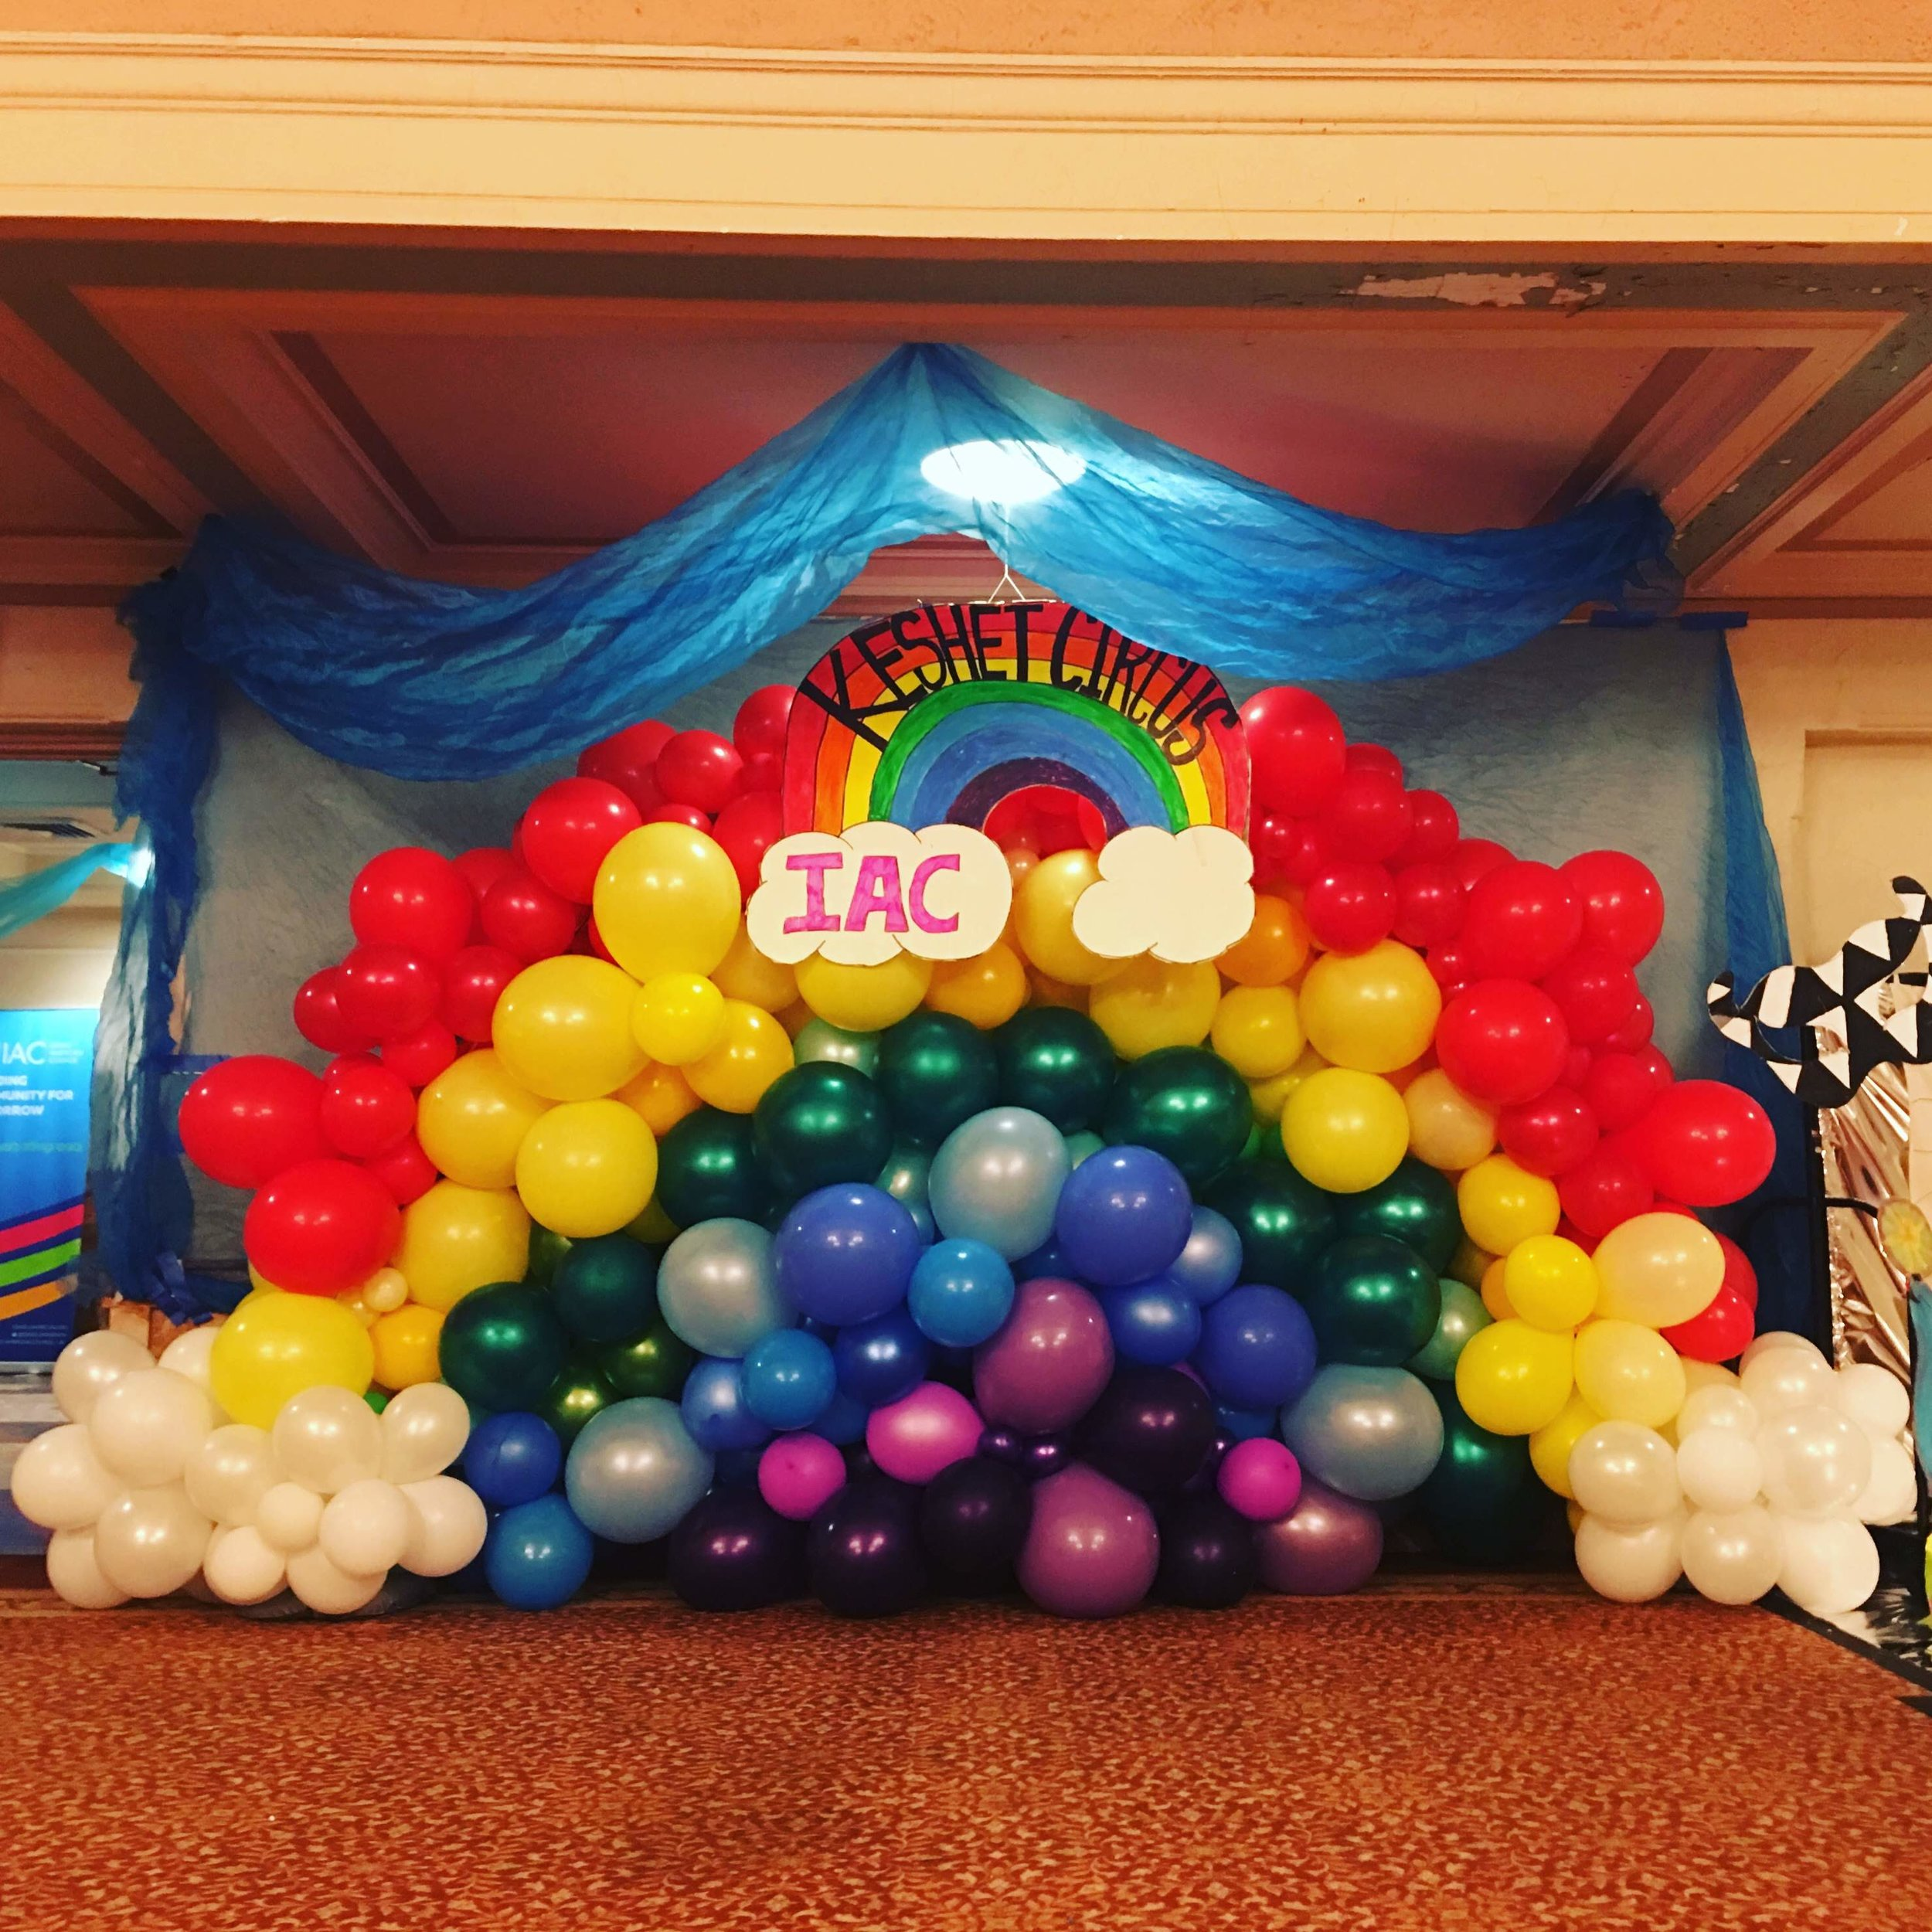 Decor Rainbow IAC.jpg